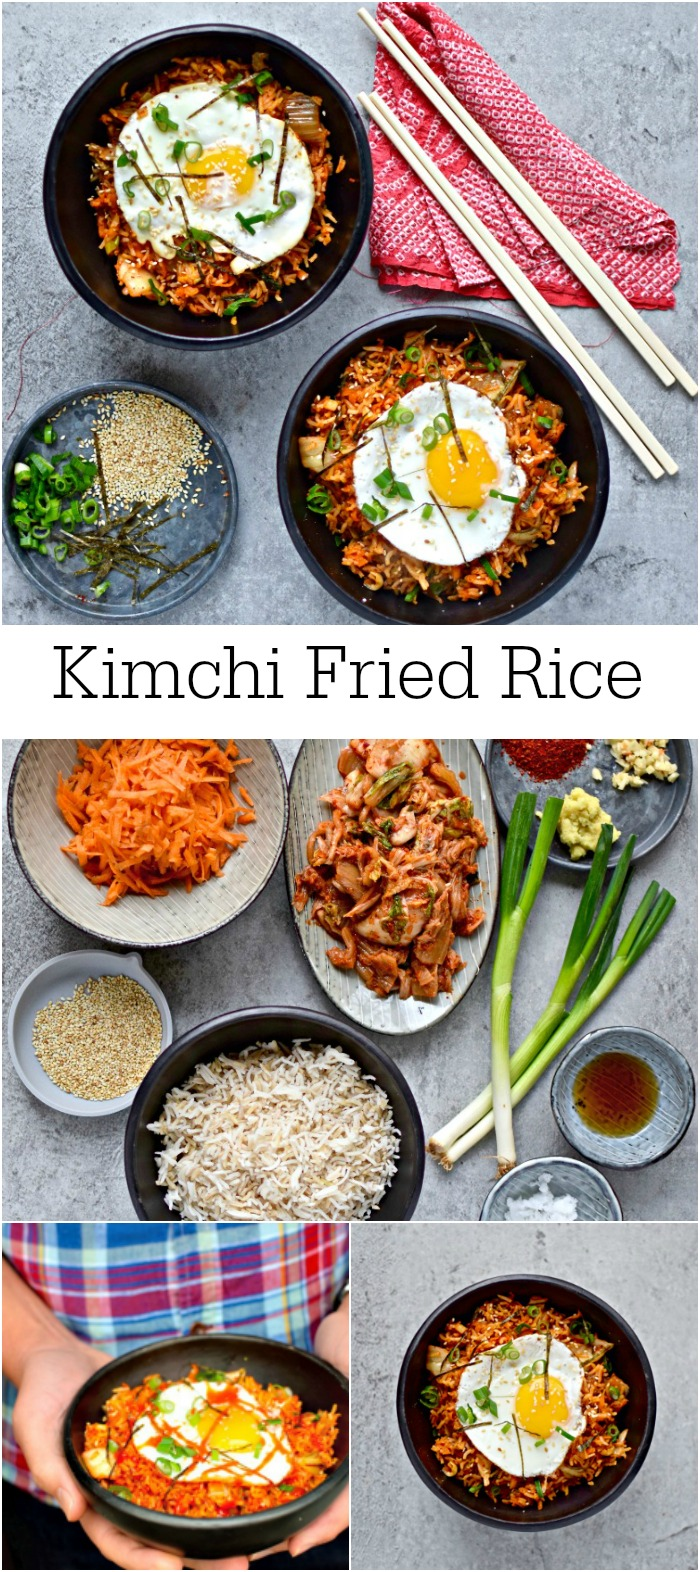 An easy, vegetarian and family-friendly introduction to fermented superfood, kimchi.